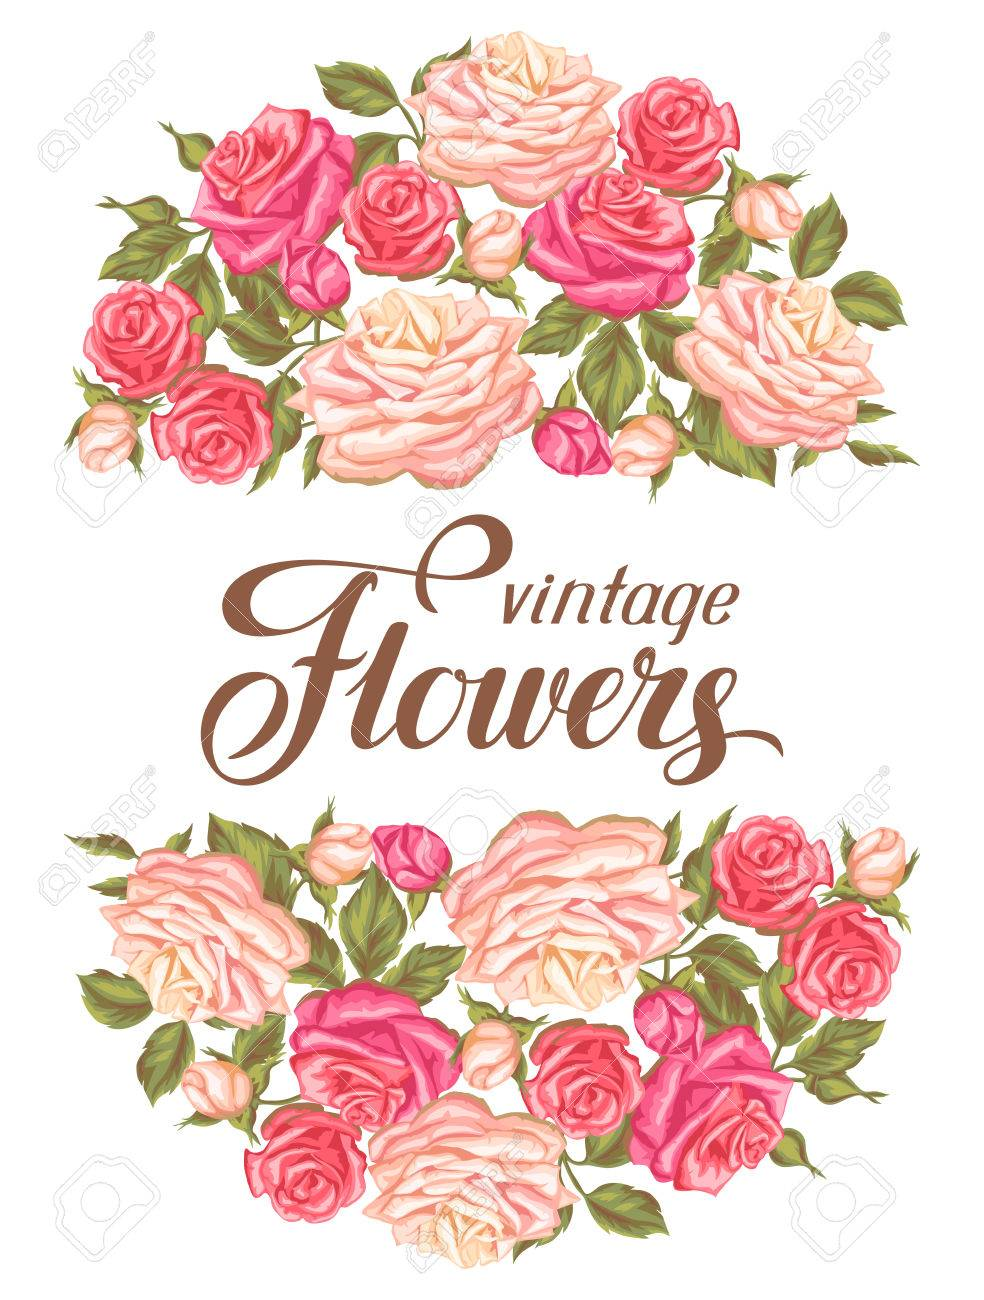 Invitation card with vintage roses decorative retro flowers invitation card with vintage roses decorative retro flowers image for wedding invitations romantic stopboris Image collections